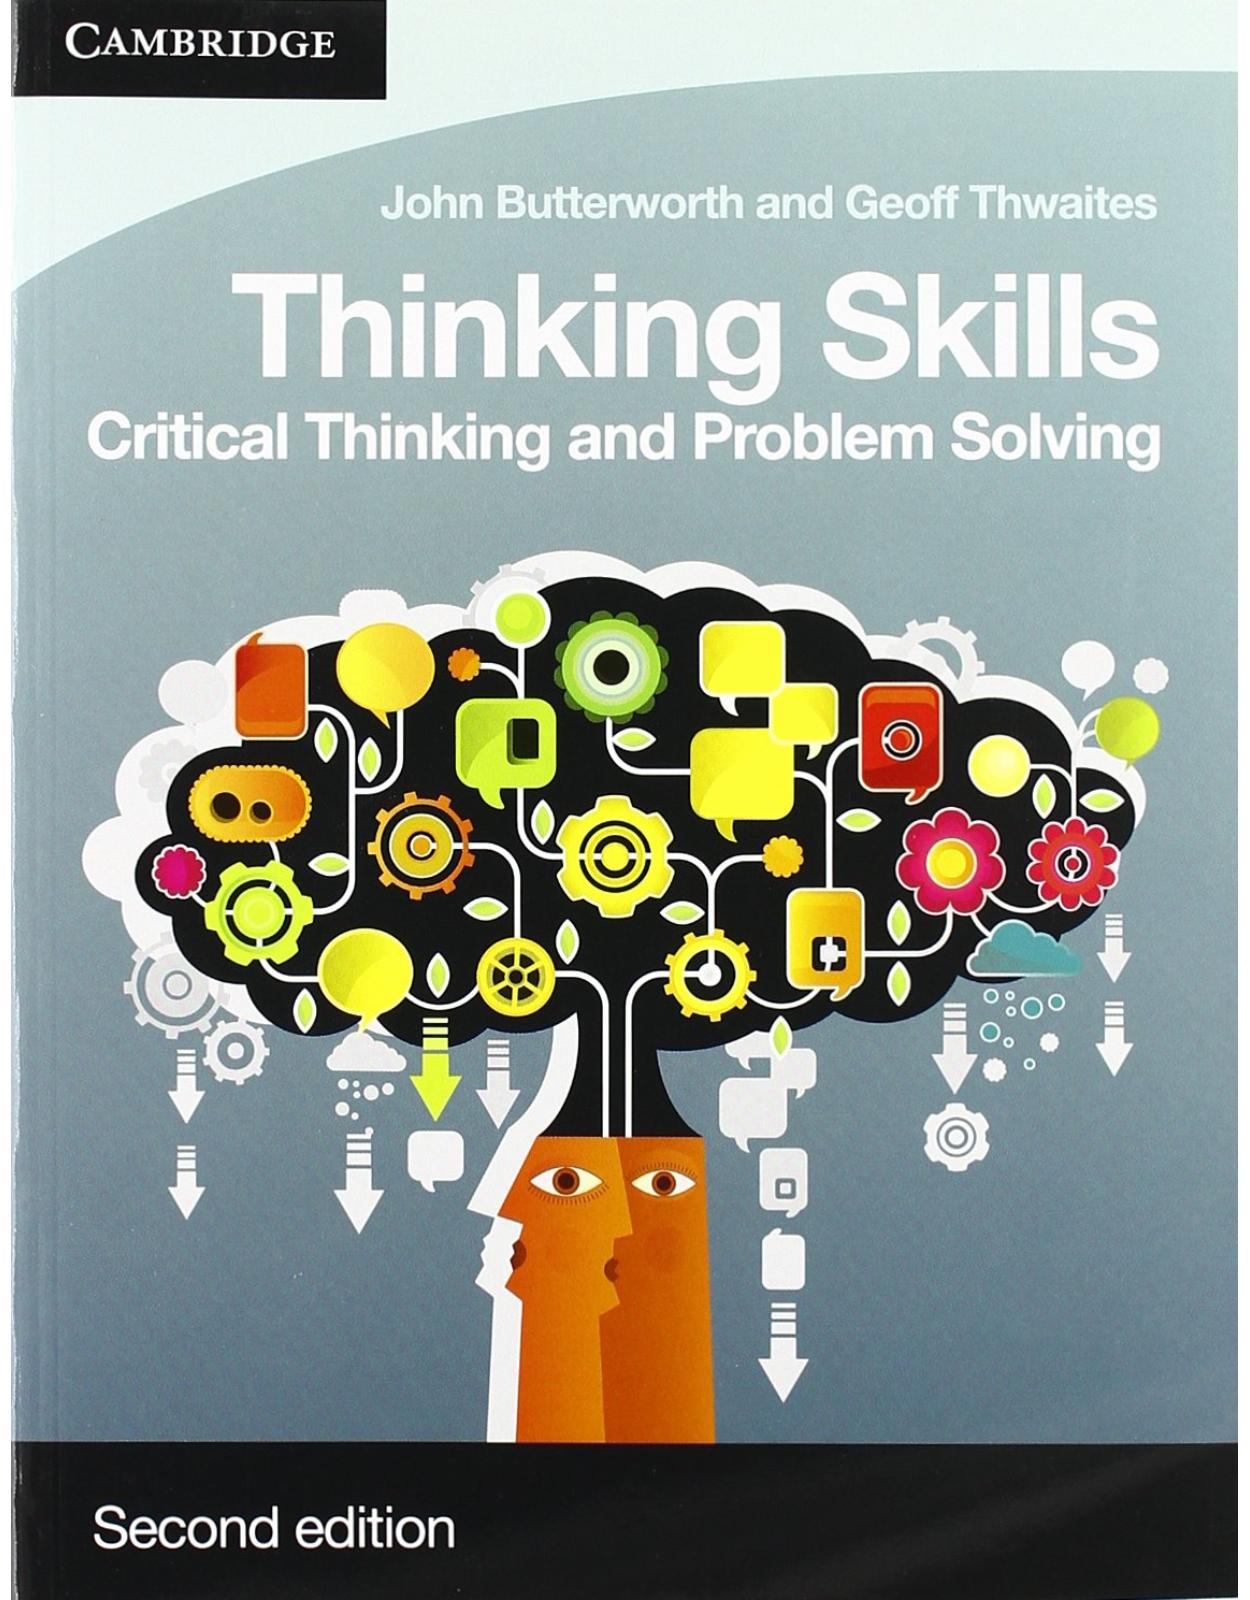 Thinking Skills: Critical Thinking and Problem Solving (Cambridge International Examinations) - Second edition